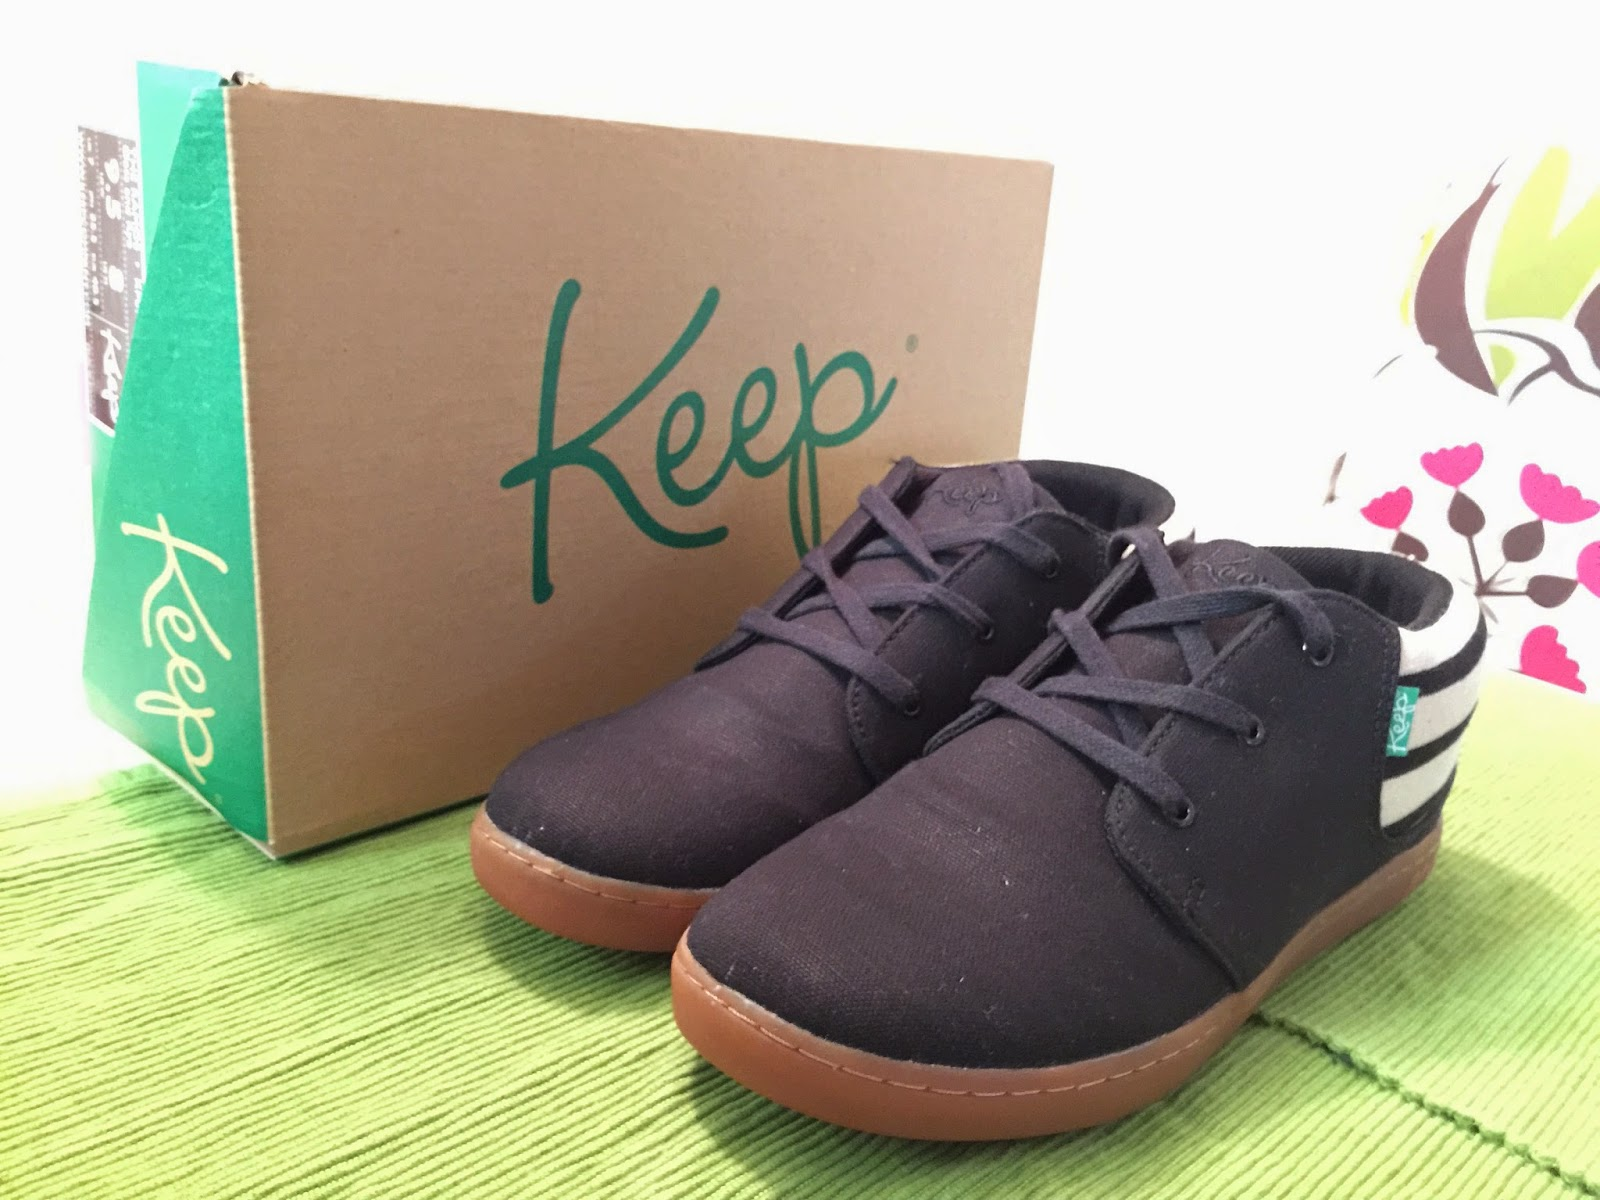 Product Review: Keep Vegan Shoes